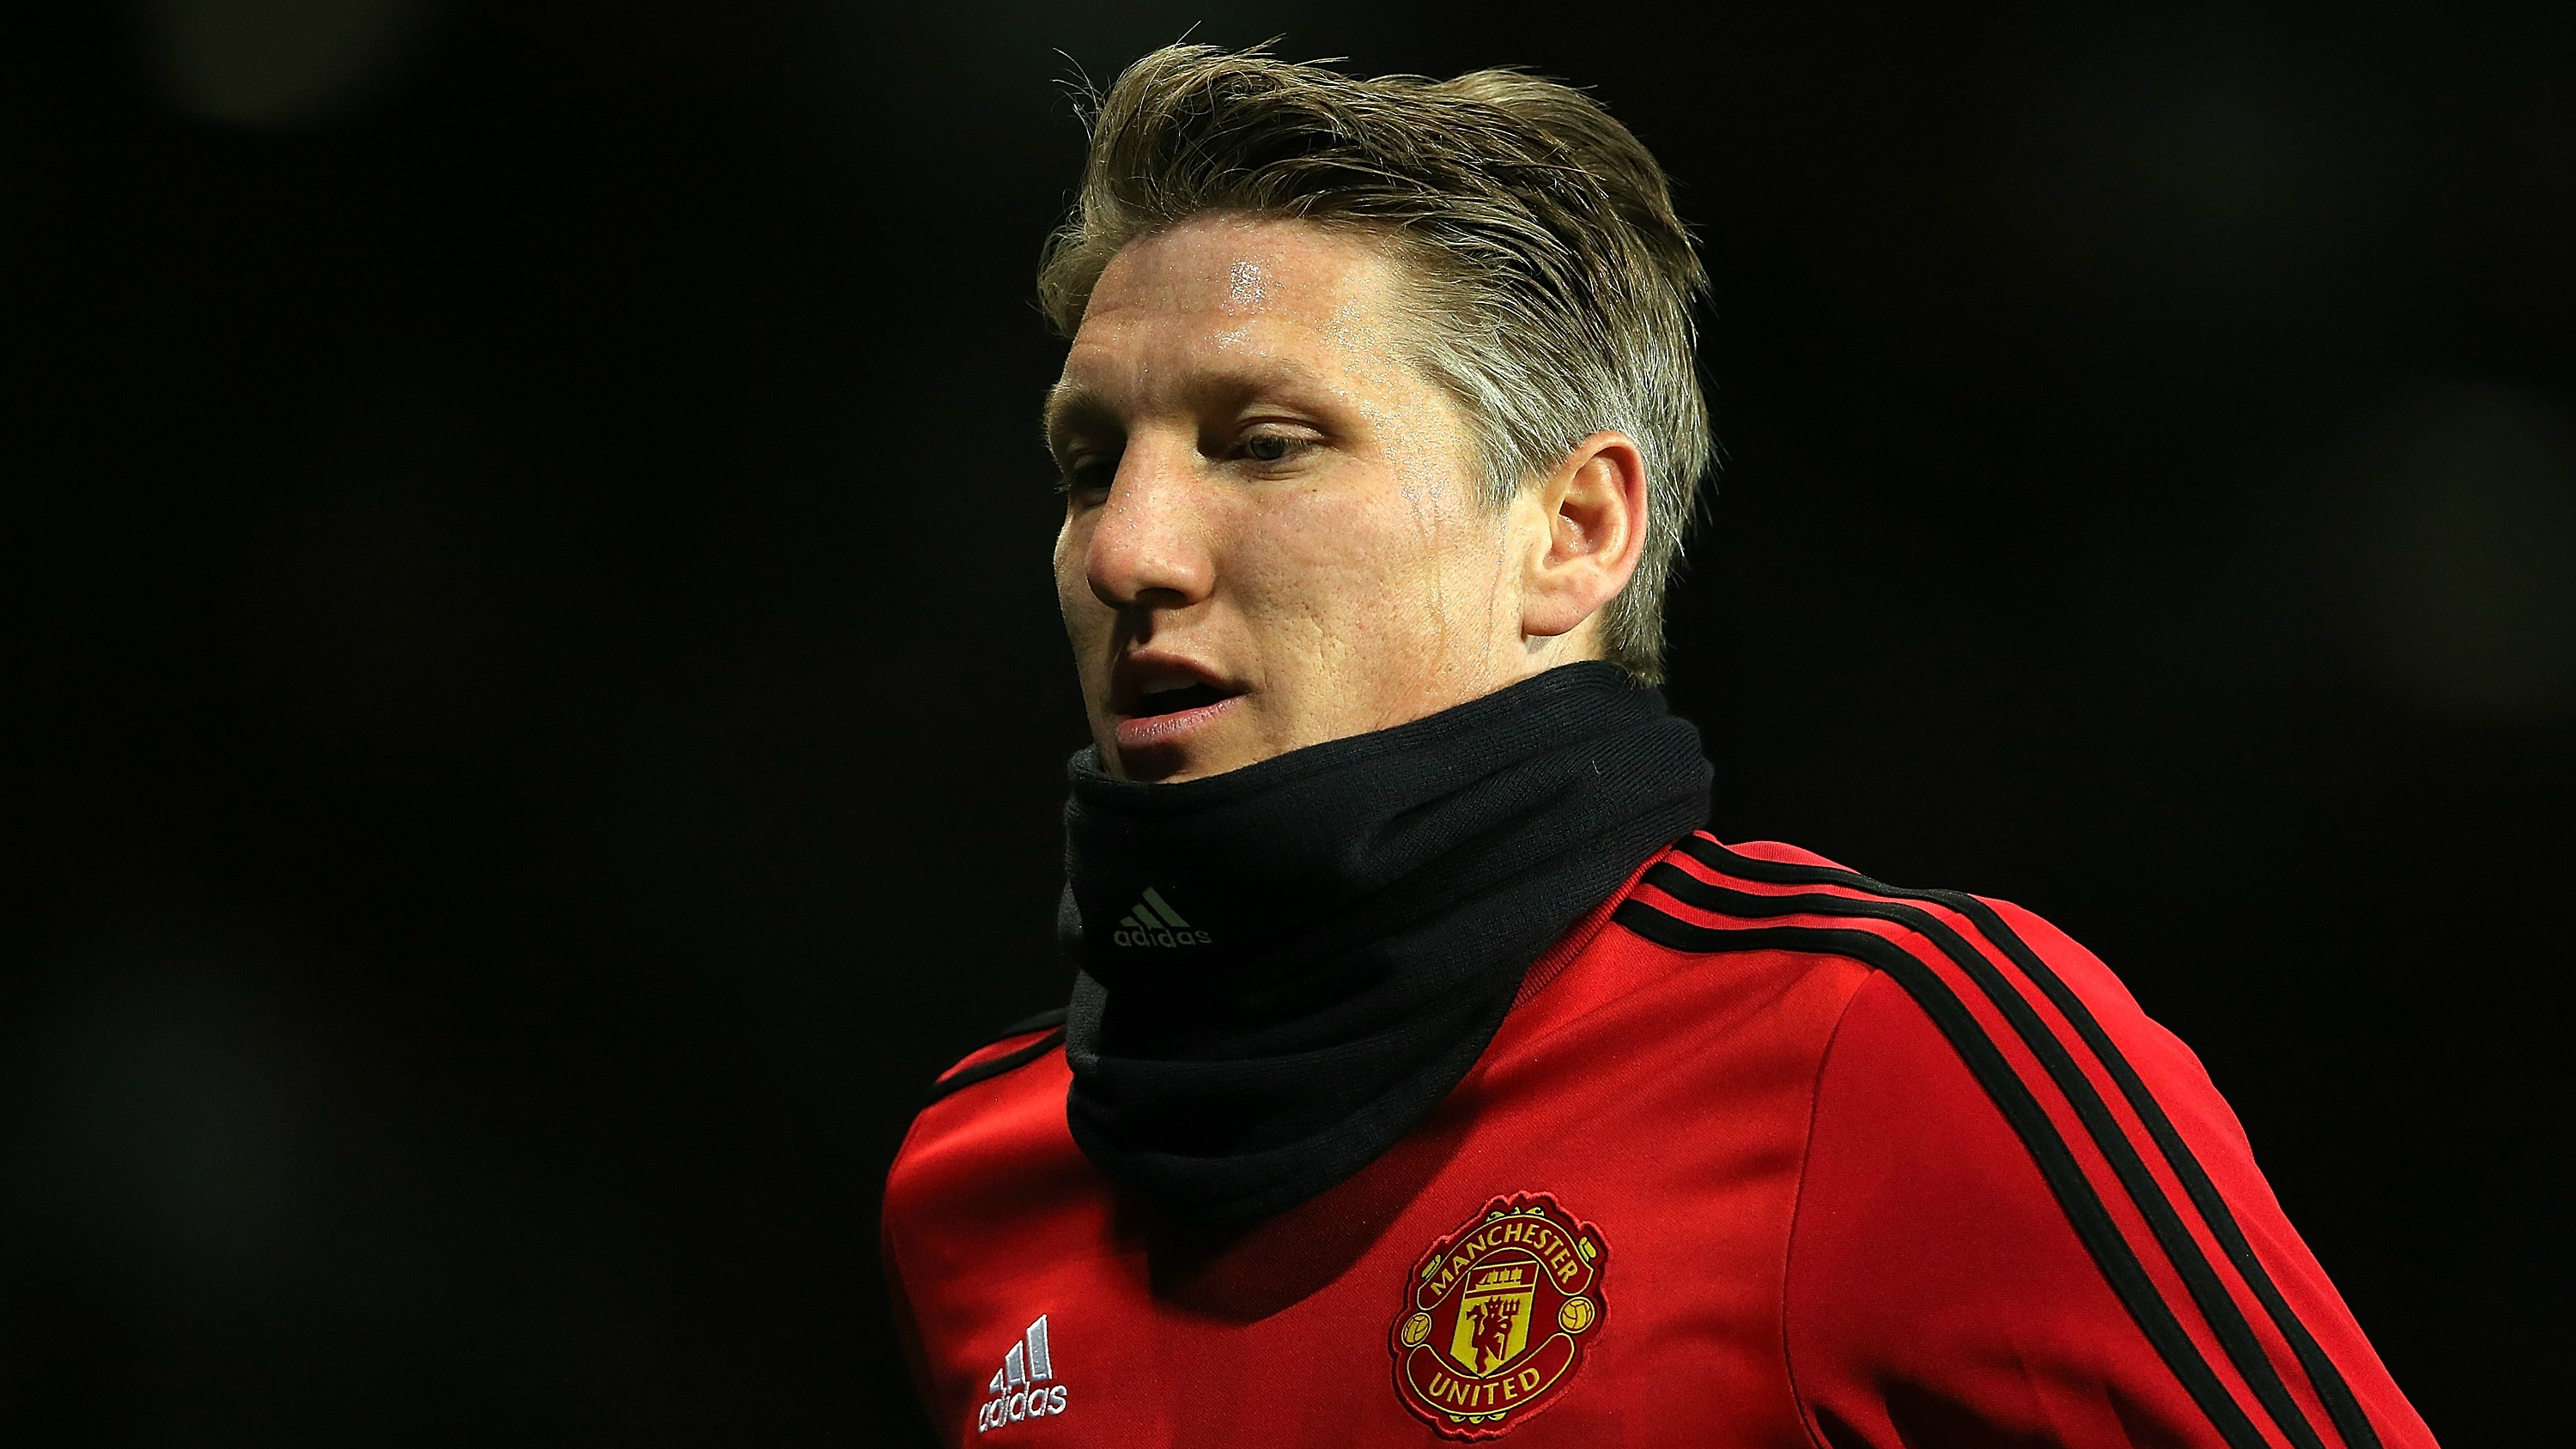 Bastian Schweinsteiger is hinting at a move to MLS